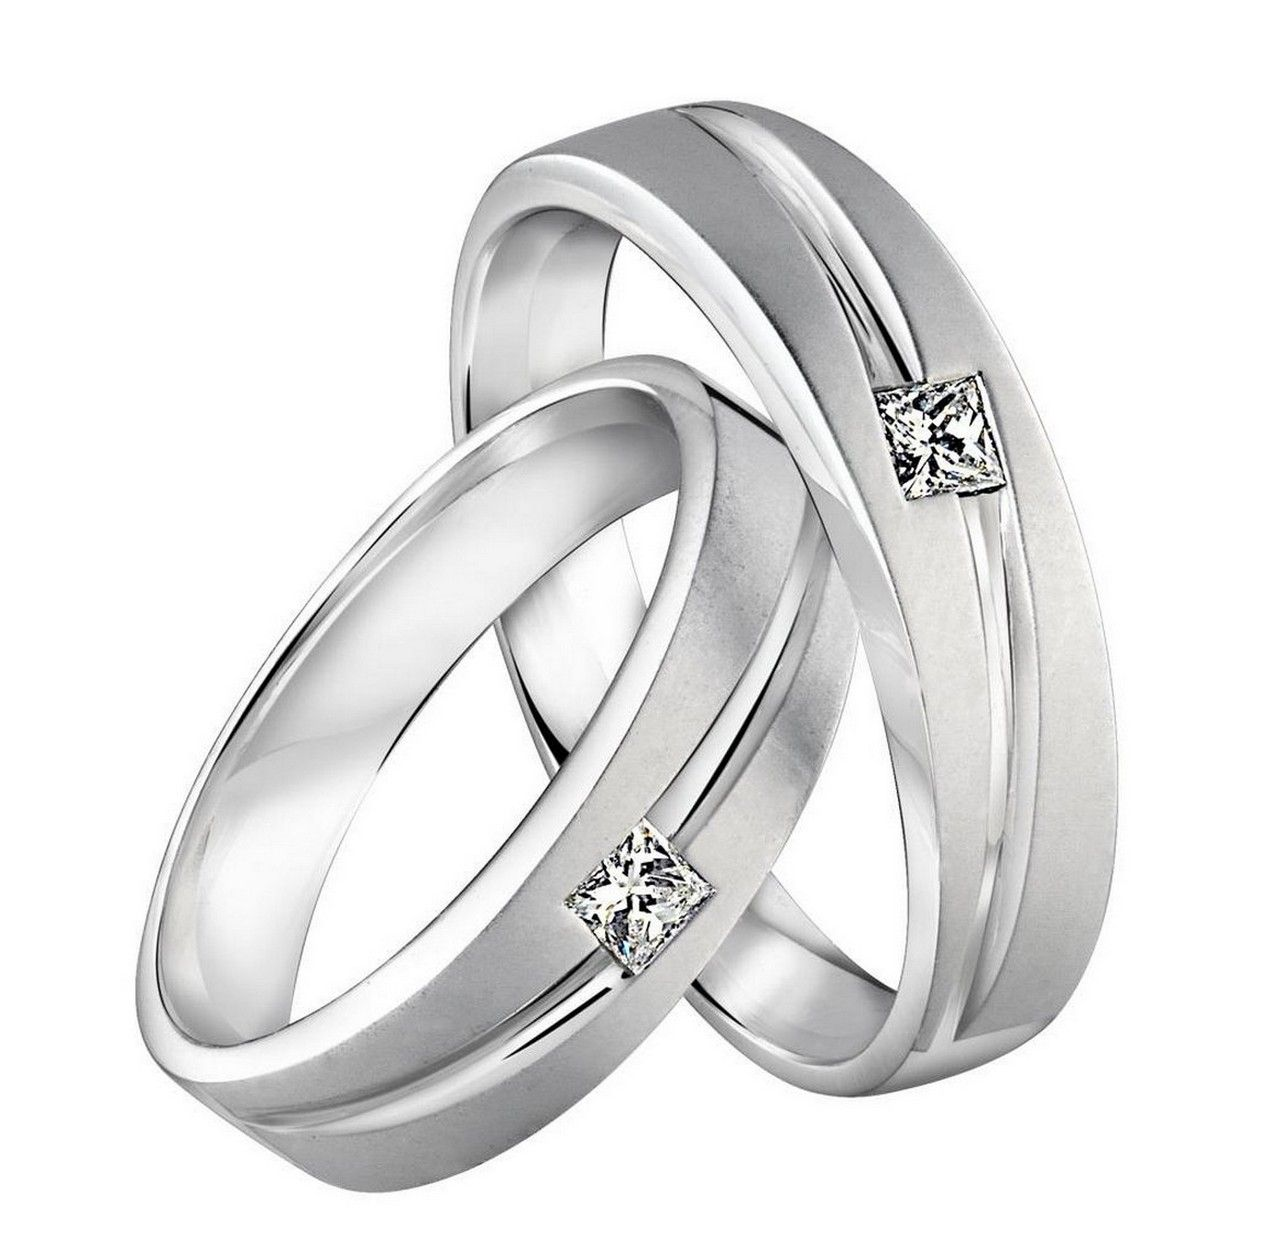 wedding ring and engagement ring | The Engagement / wedding ring ...